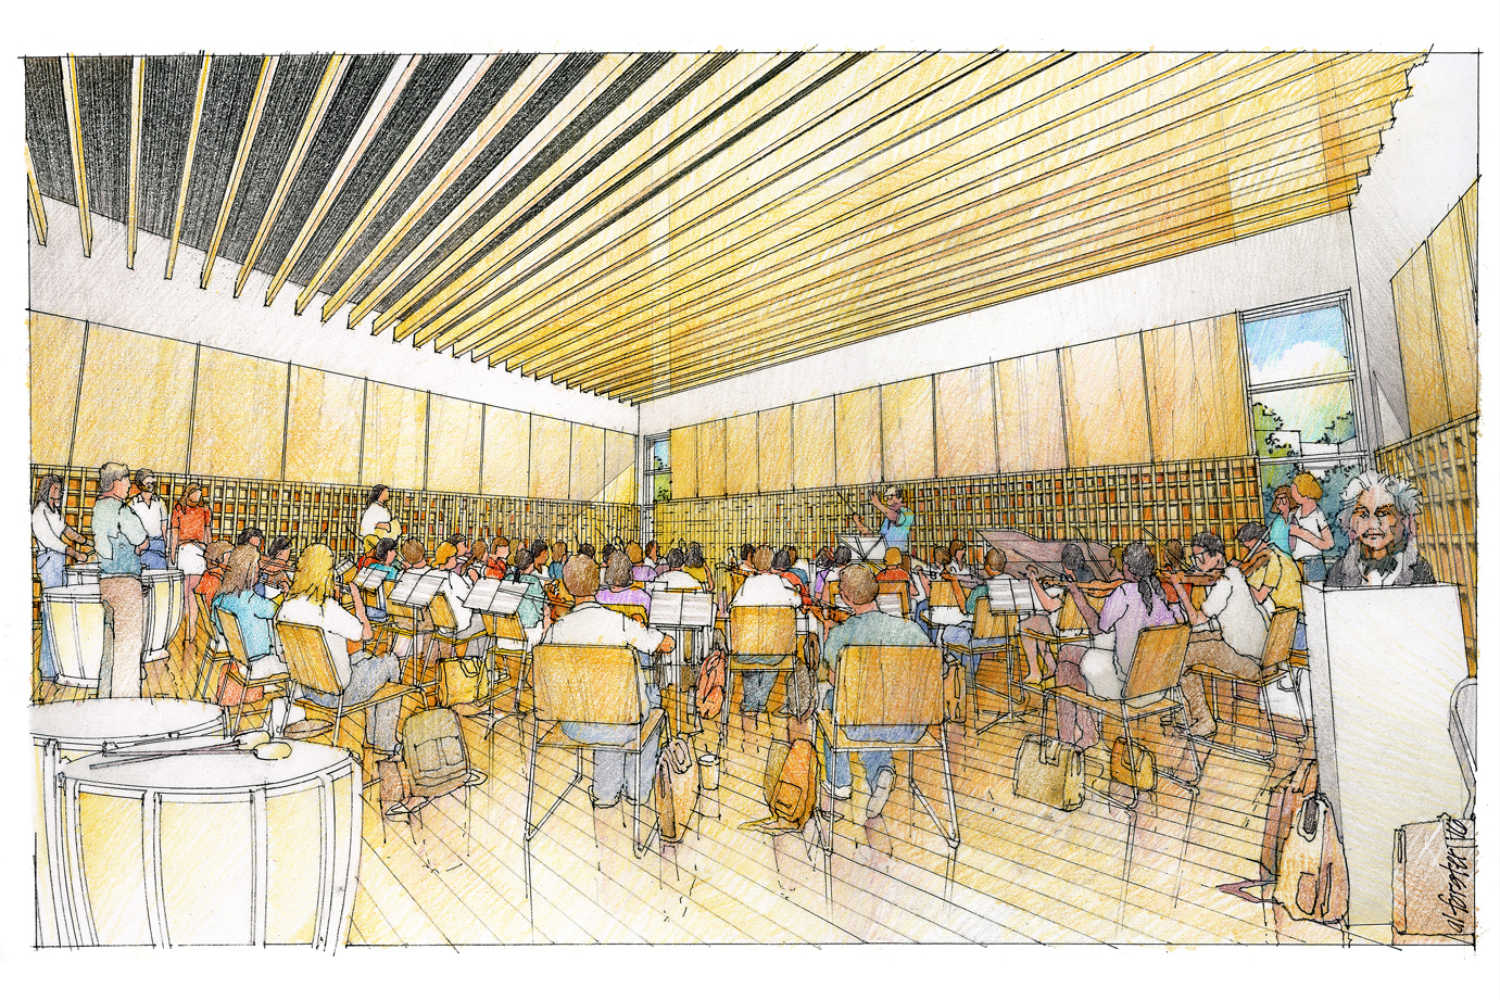 Concordia University Irvine, WSDG was commissioned for the design and acoustics of the facility. Sketch orchestra room